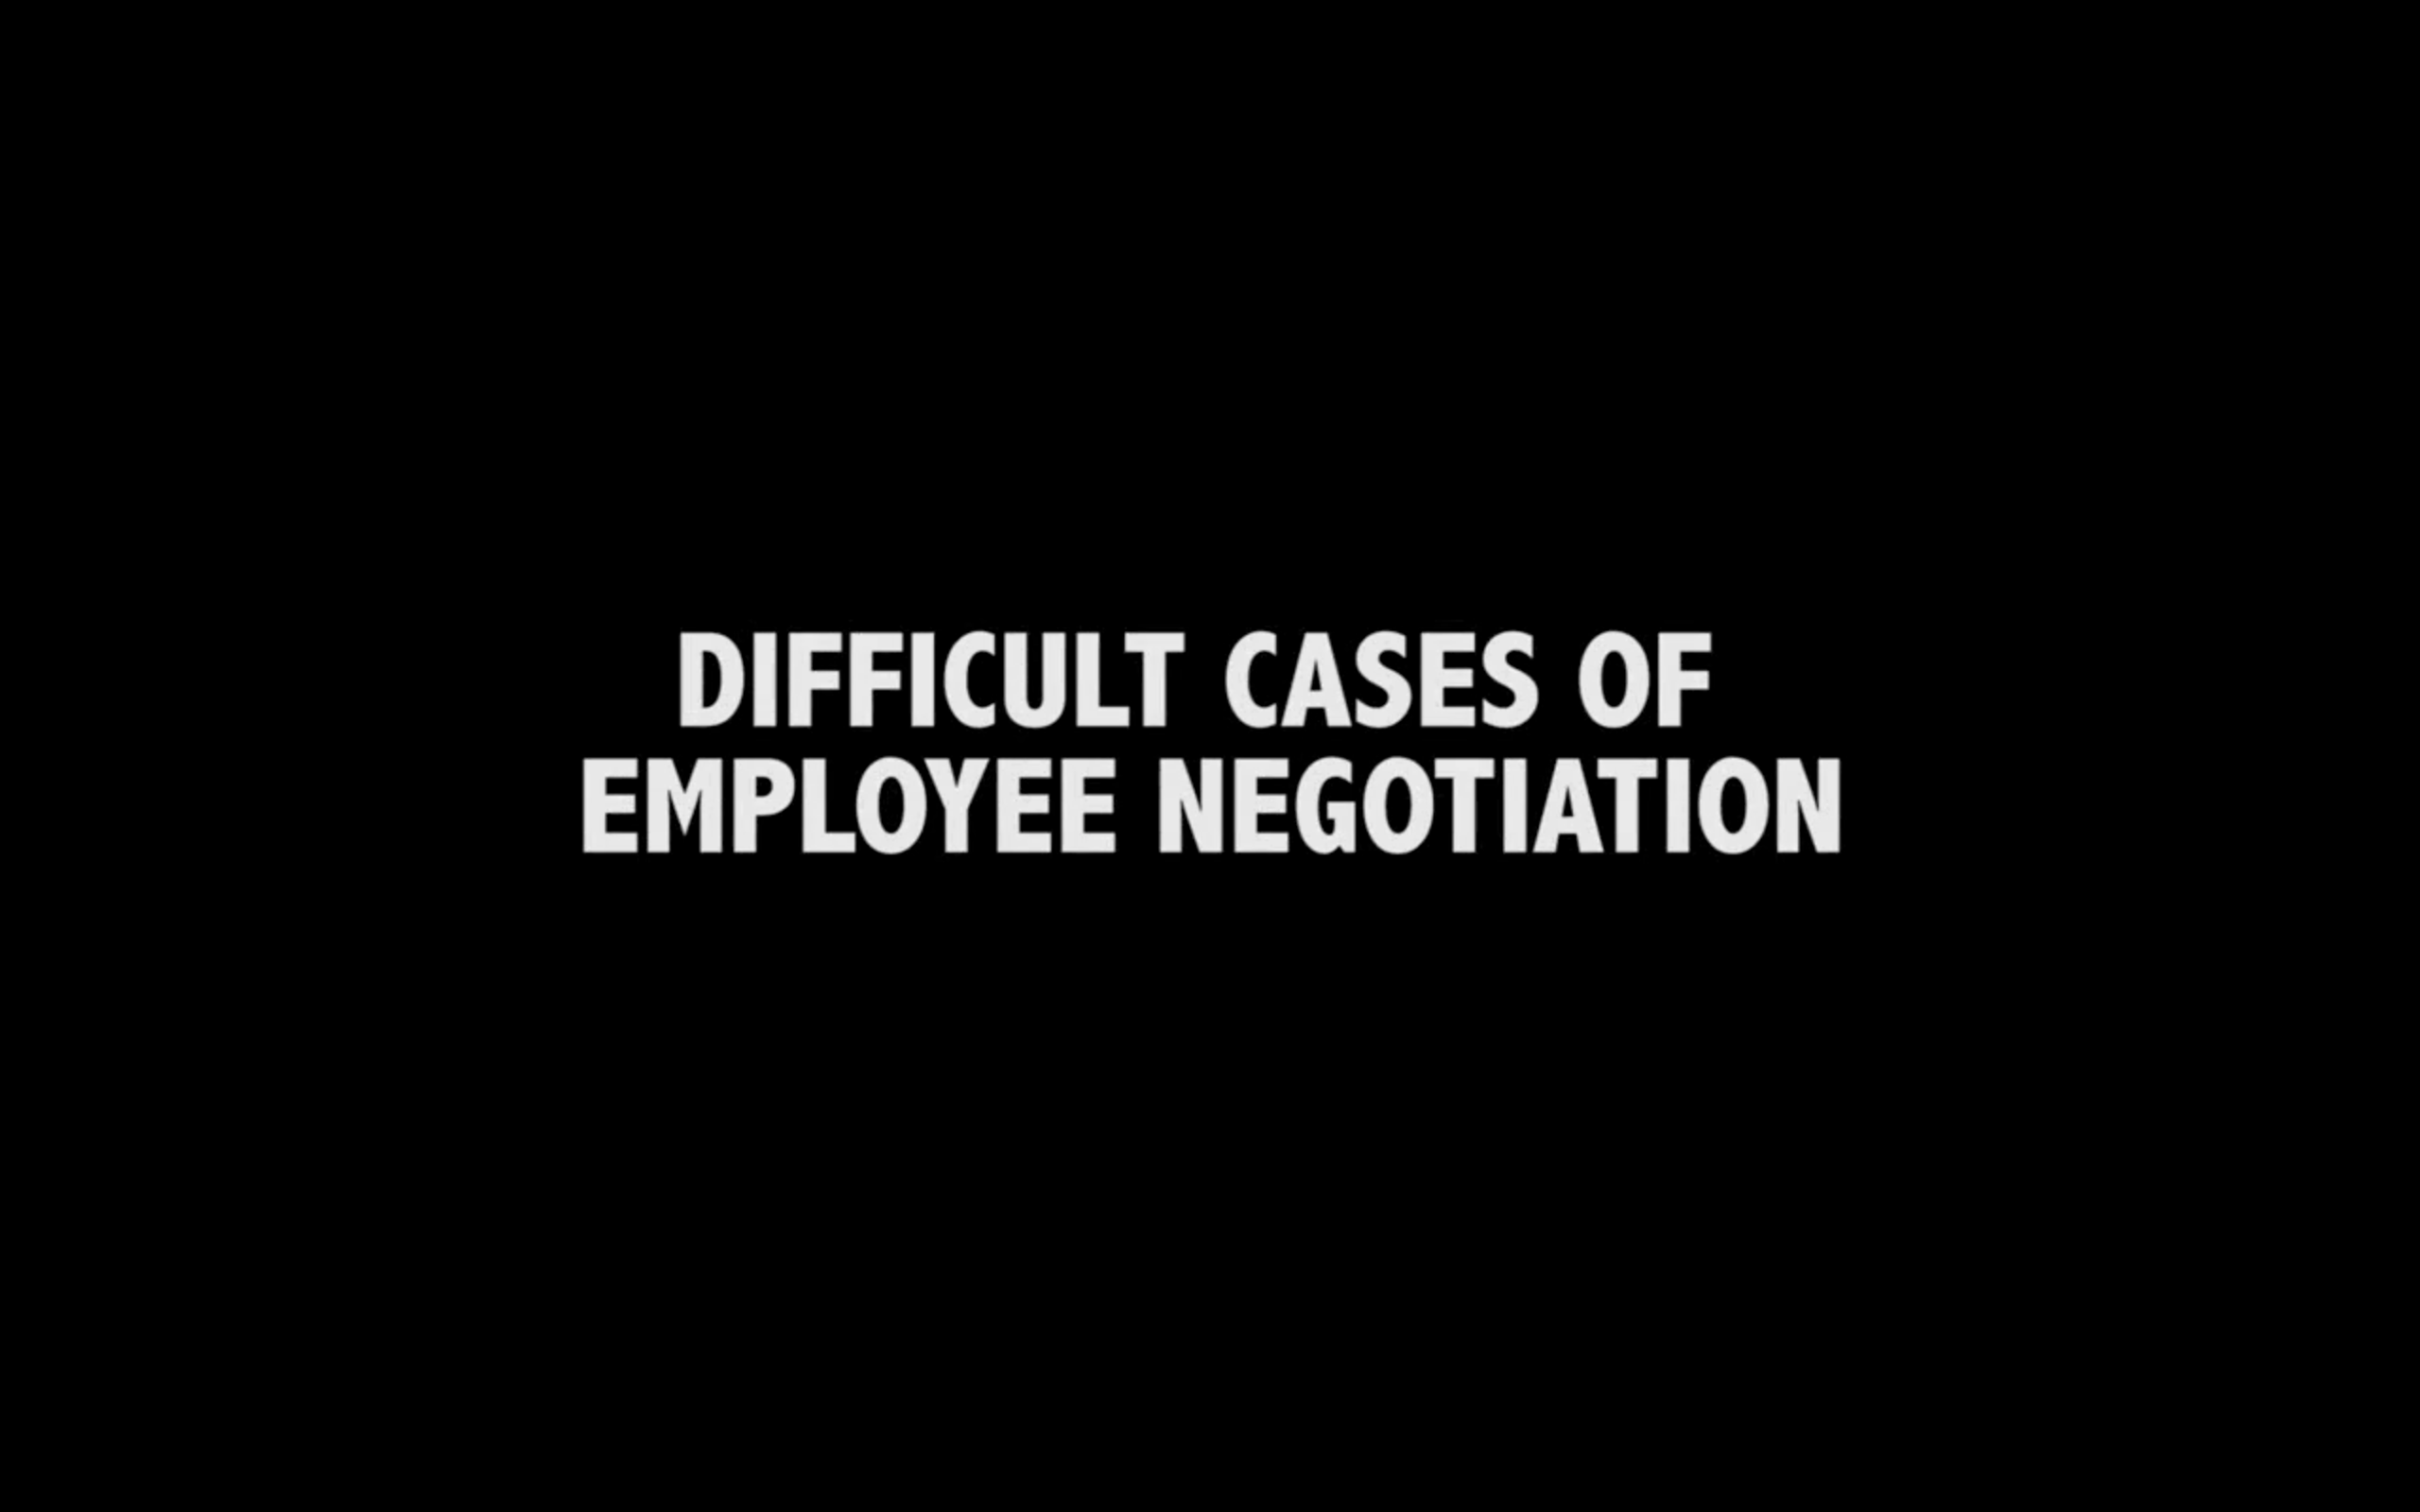 Difficult Cases of Employee Negotiation